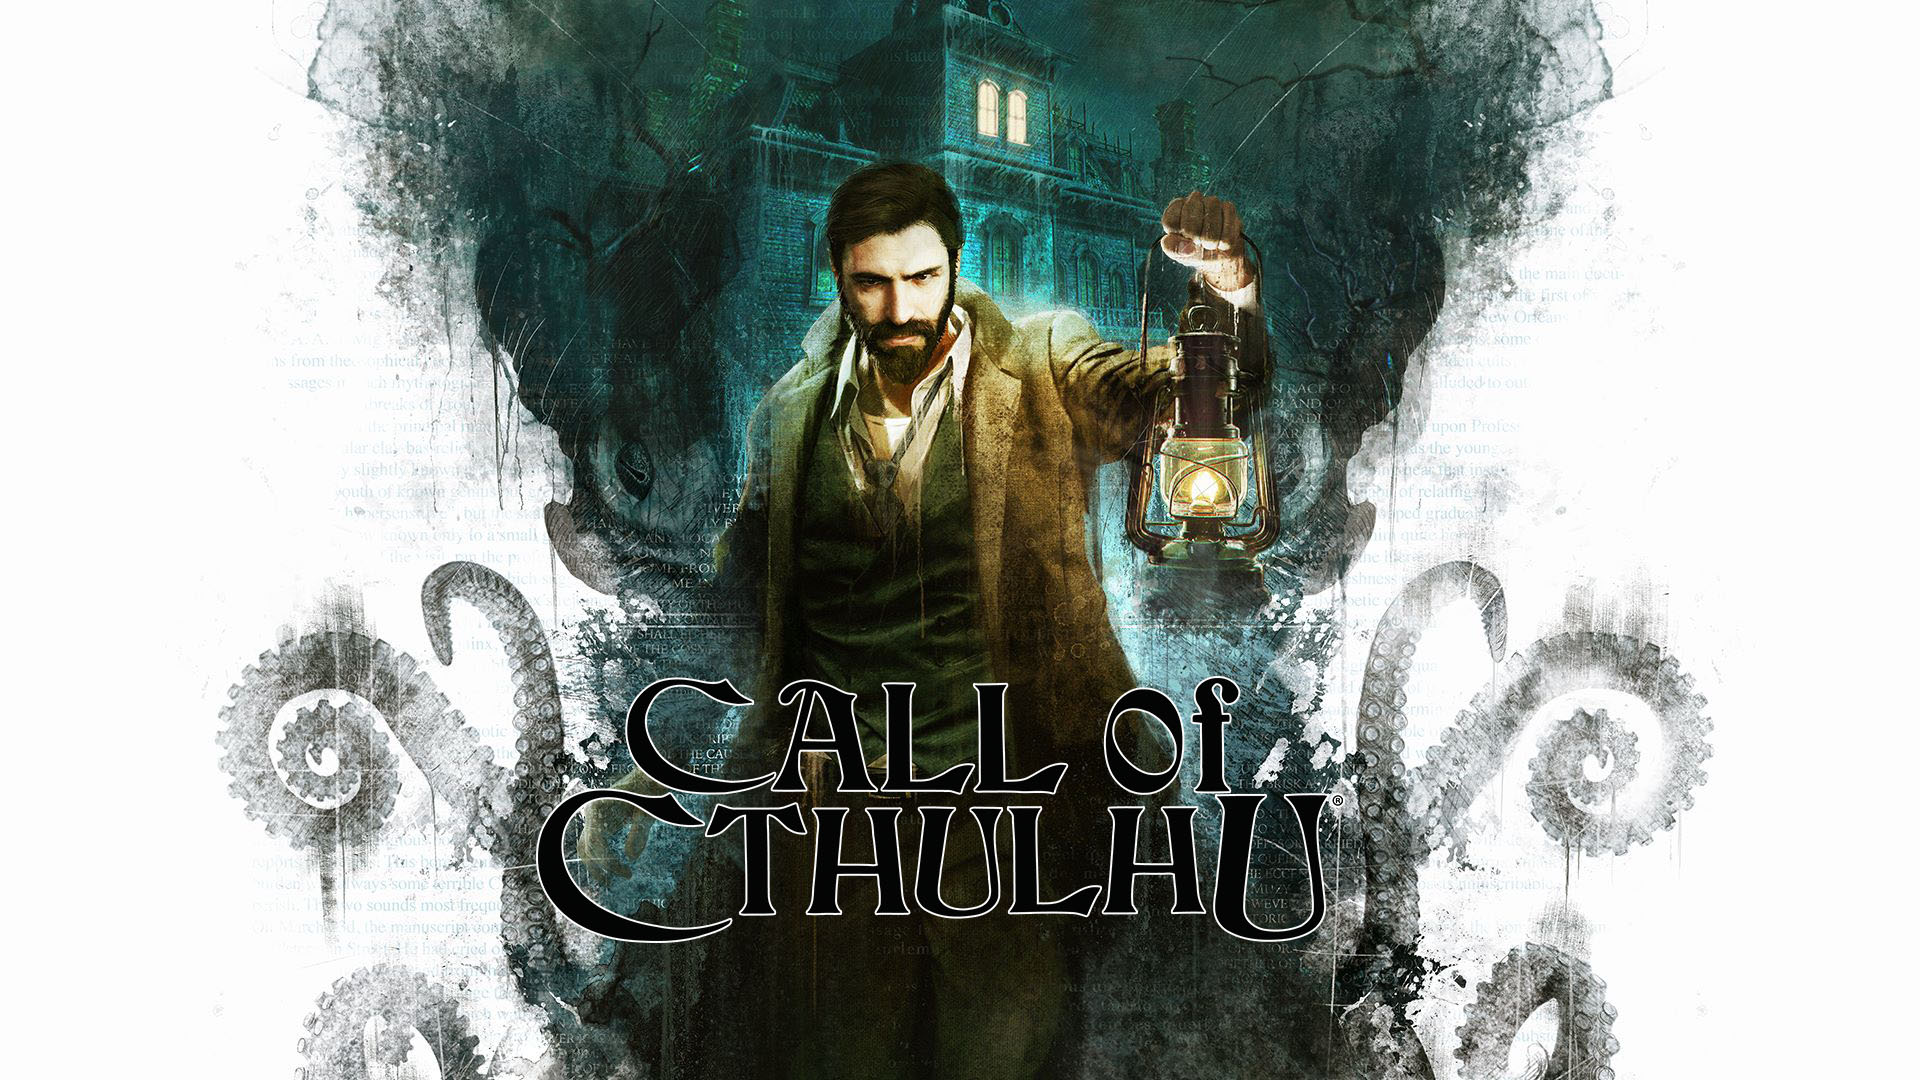 Call of Cthulhu (Nintendo Switch) Review